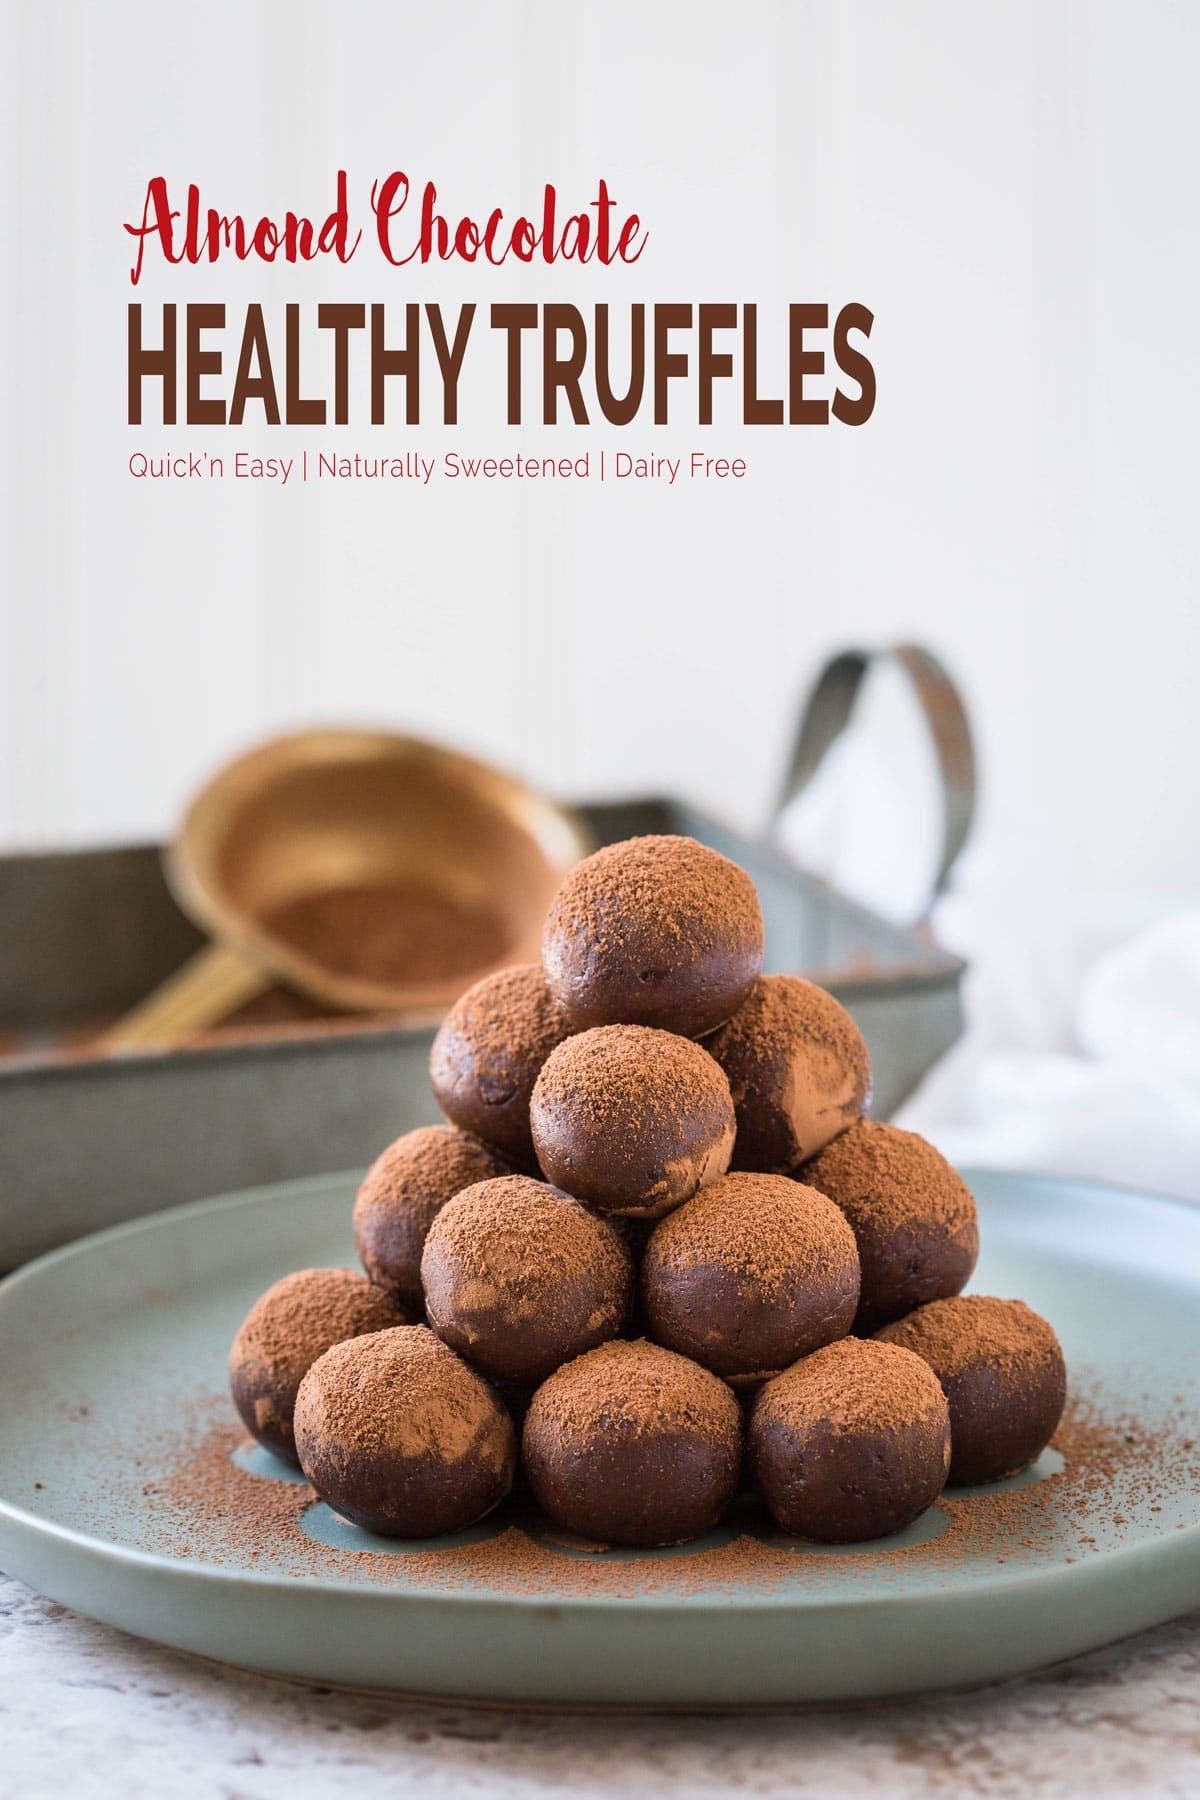 These almond chocolate truffles are amazingly delicious and tempting. The best part is, these are healthy with no added white sugar or dairy butter or cream.   #truffles #chocolatetruffles #vegantruffles #almondtruffles